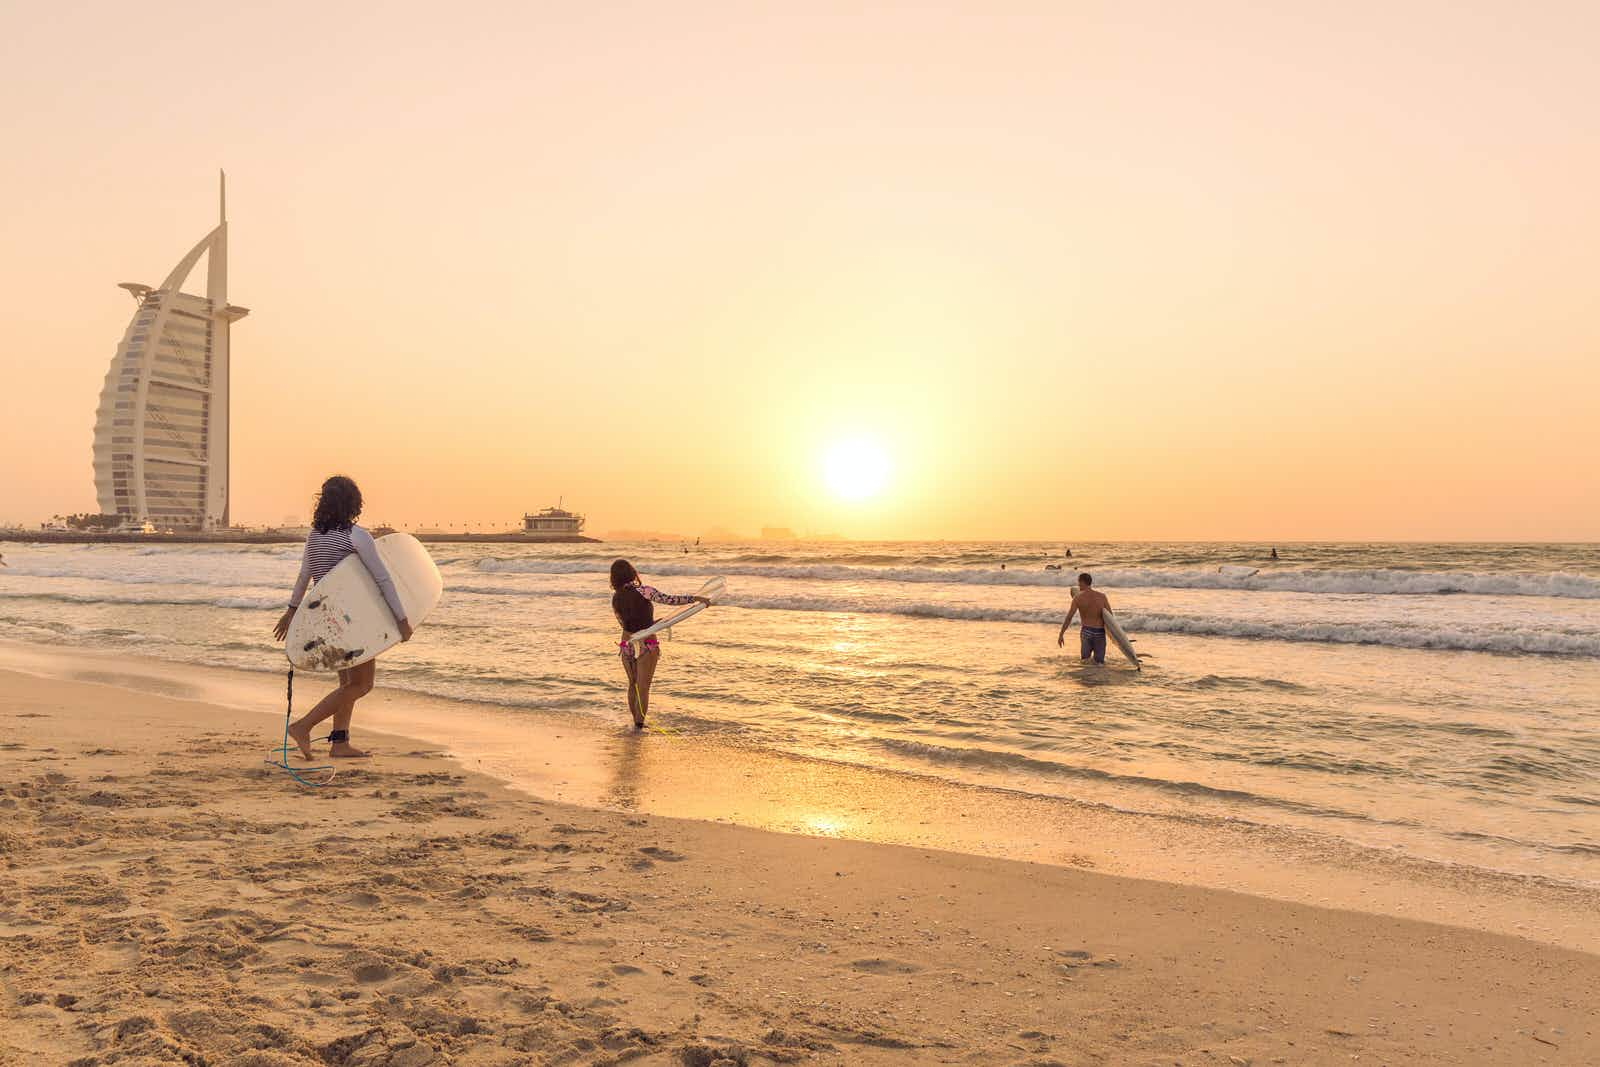 October 4 2017: Three Surfers go into the waters during sunset with the Burj Al Arab hotel in the background.